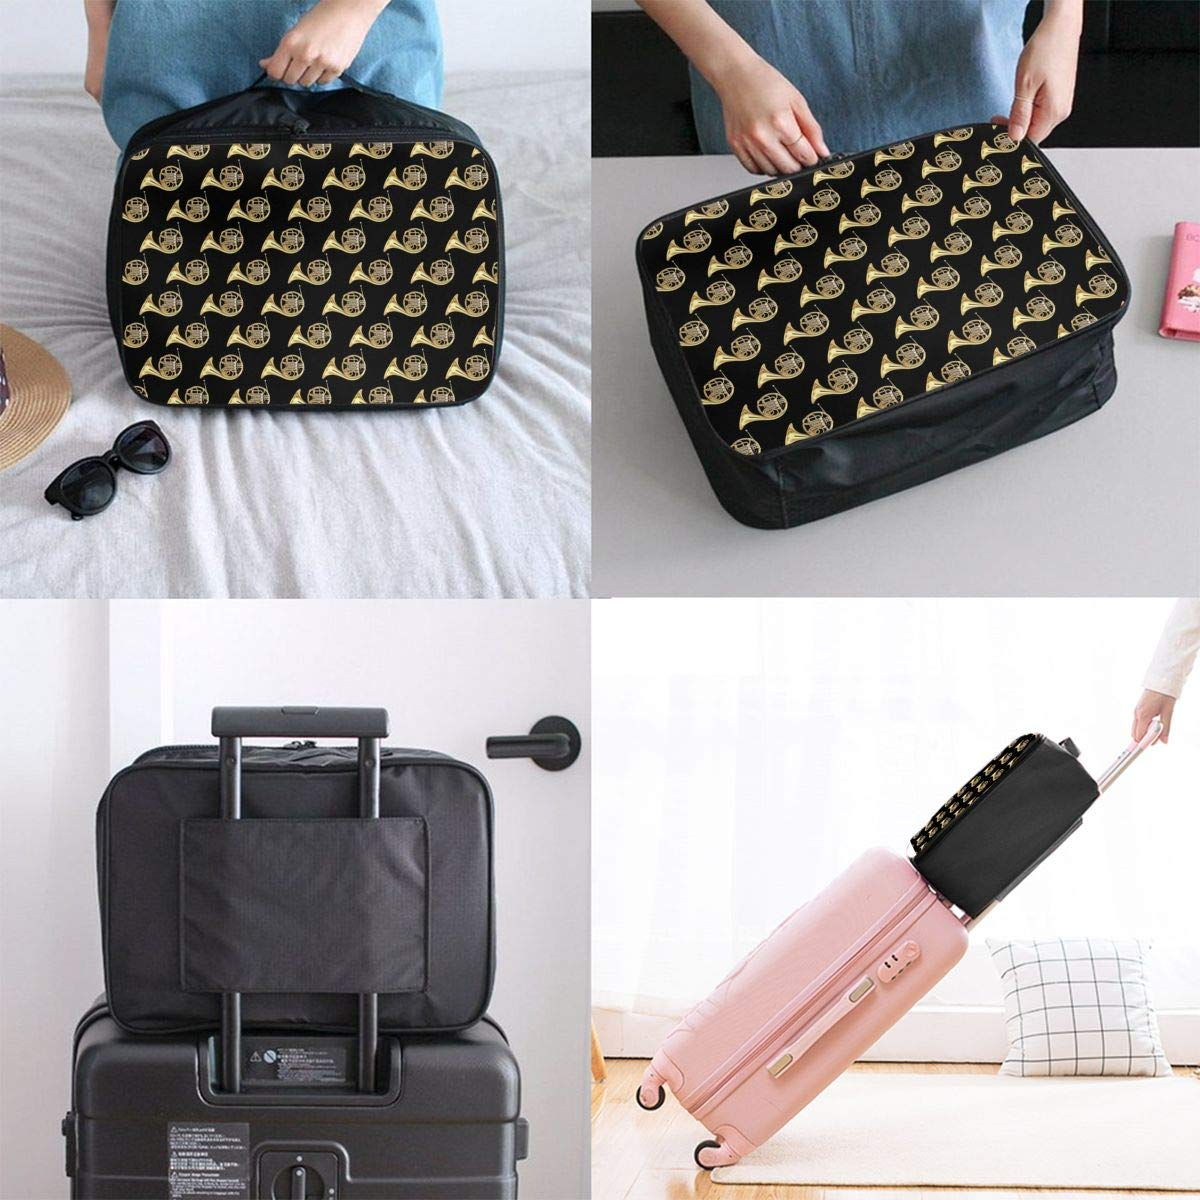 YueLJB French Horns Lightweight Large Capacity Portable Luggage Bag Travel Duffel Bag Storage Carry Luggage Duffle Tote Bag